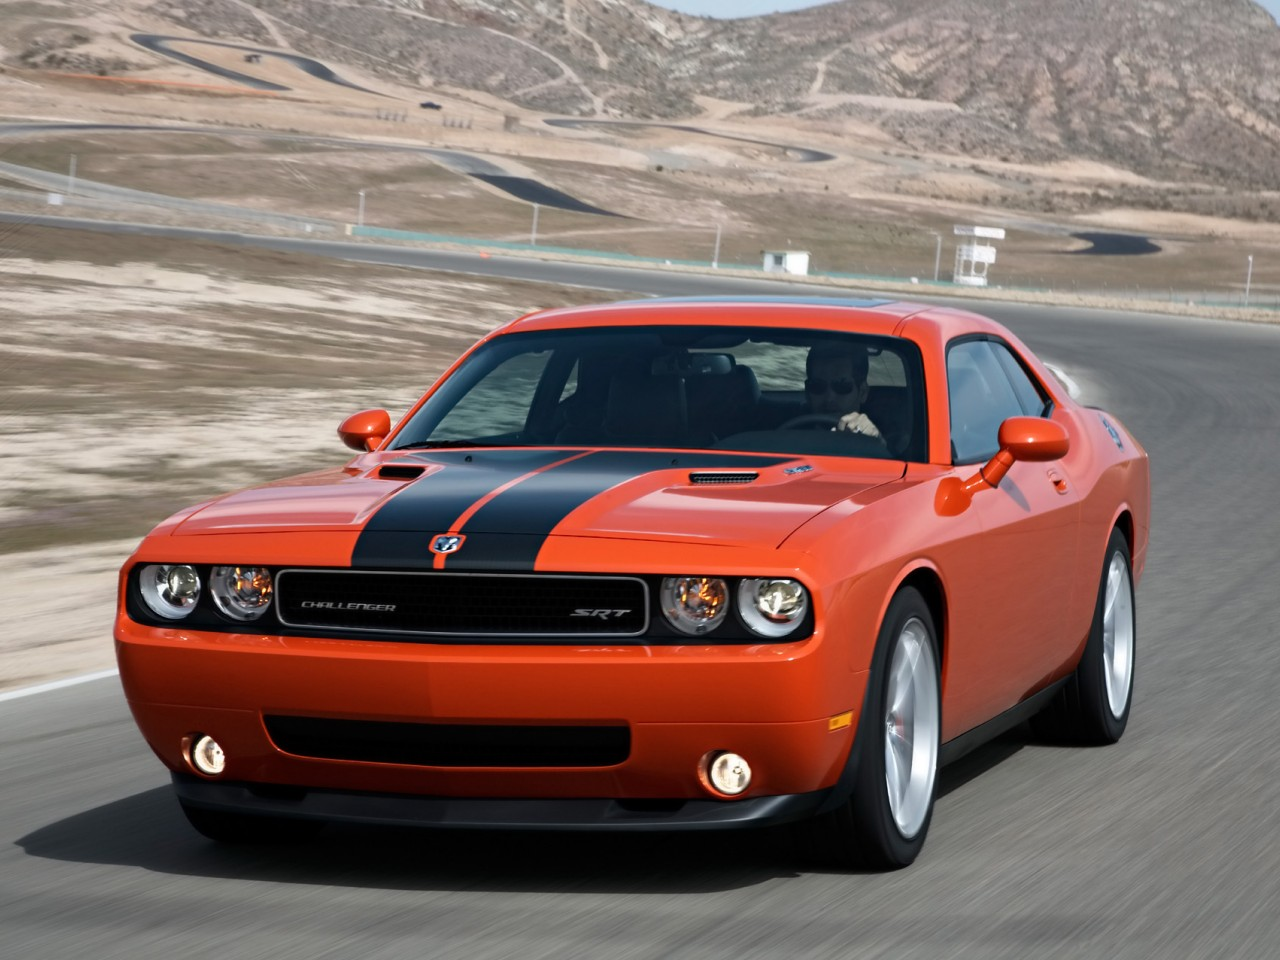 2010 dodge challenger srt8 motor desktop. Black Bedroom Furniture Sets. Home Design Ideas